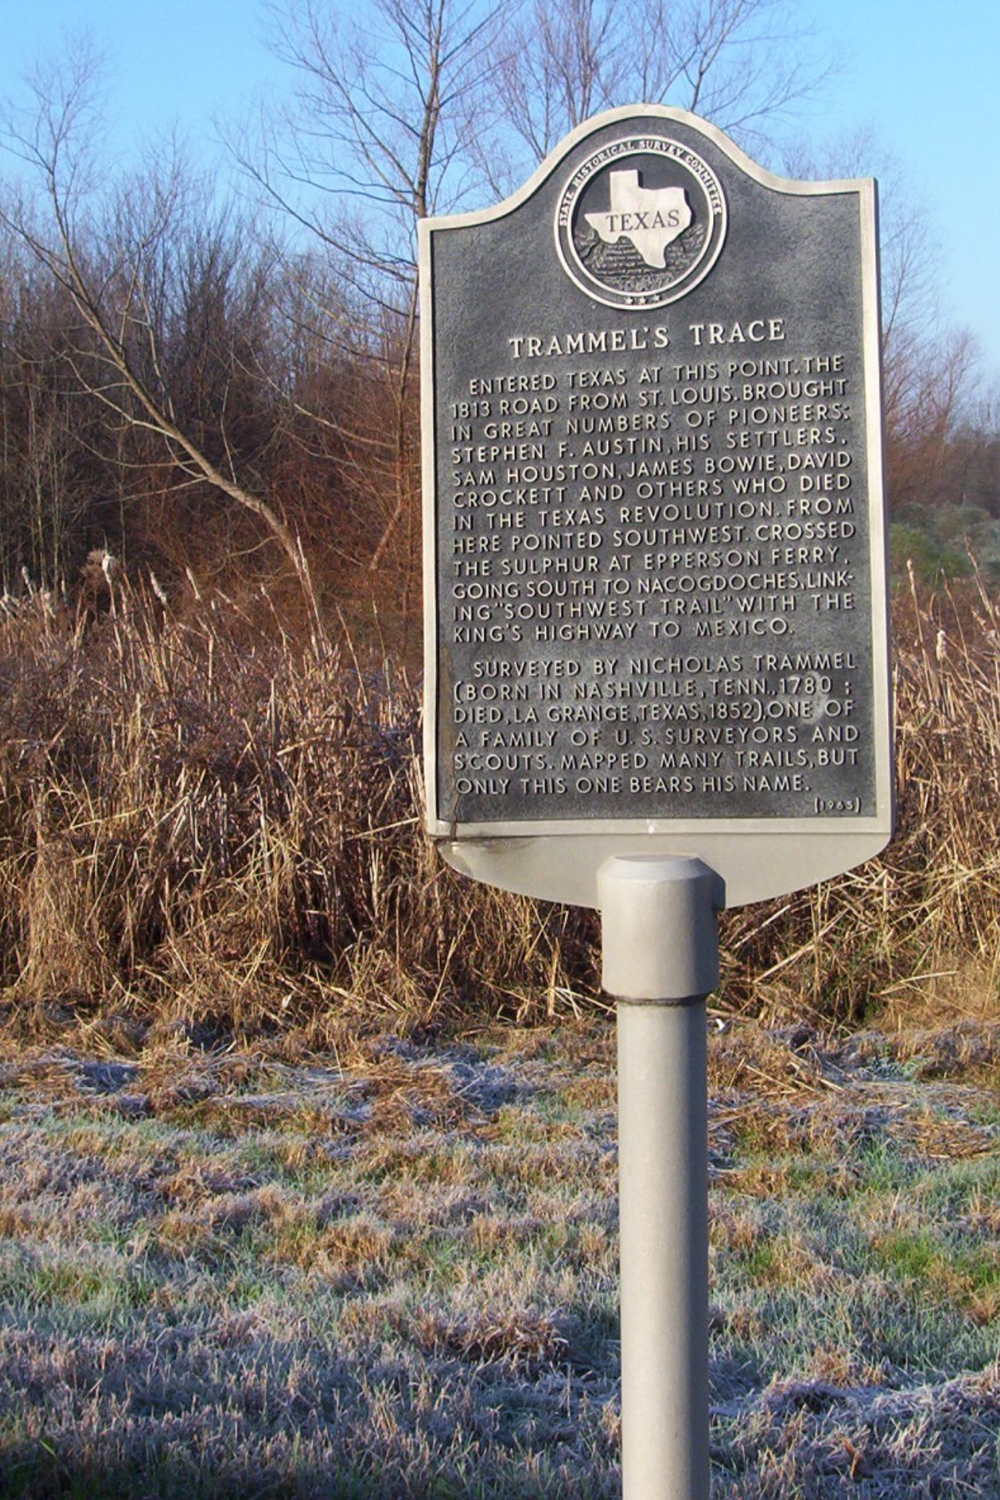 Historical Marker gone?